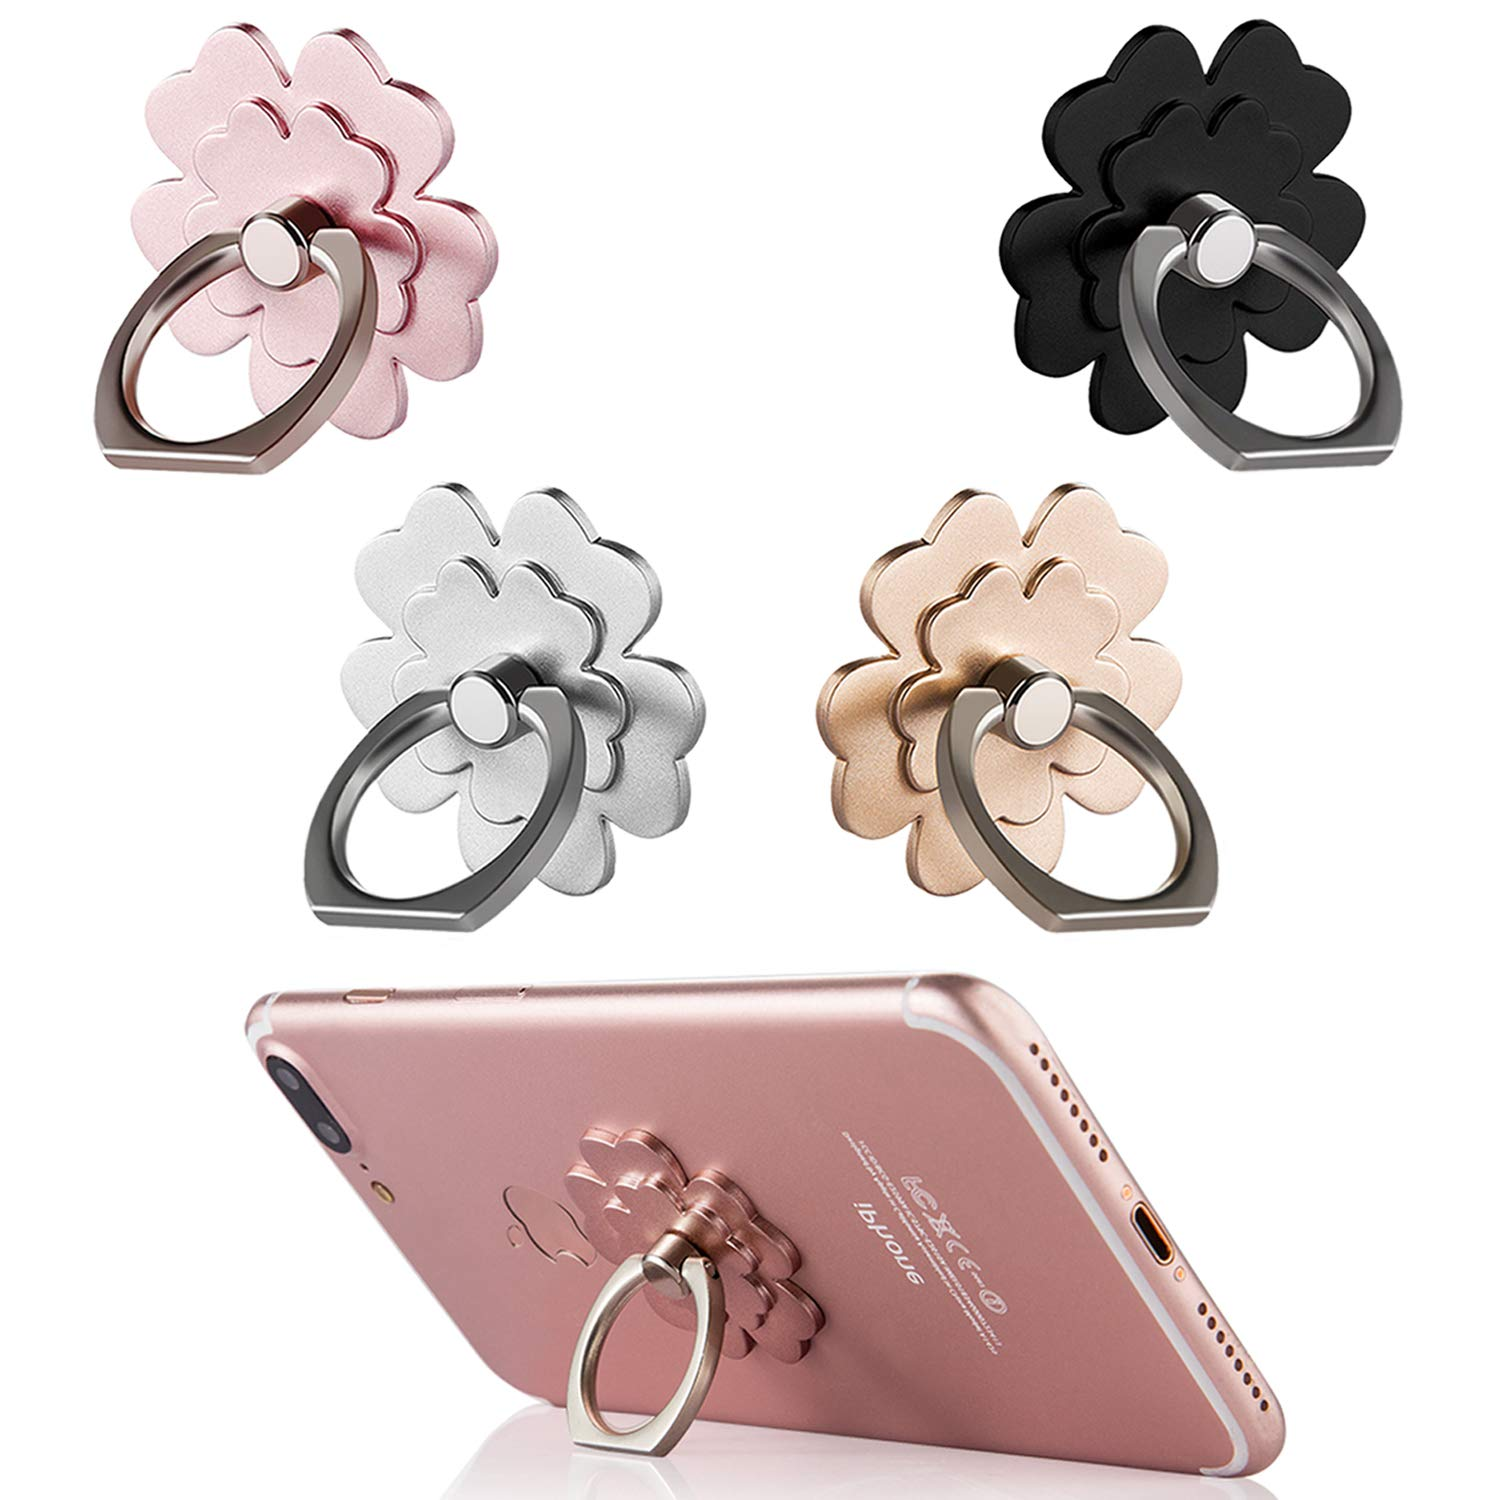 Phone Ring Stand [4 Pack] - Mengfly Universal Phone Finger Ring Grip Stand Holder Compatible with iPhone Xs Max XR X 8 7 6 6s Plus, Samsung Galaxy S9 S8 Plus S7 S6 Other Smartphones